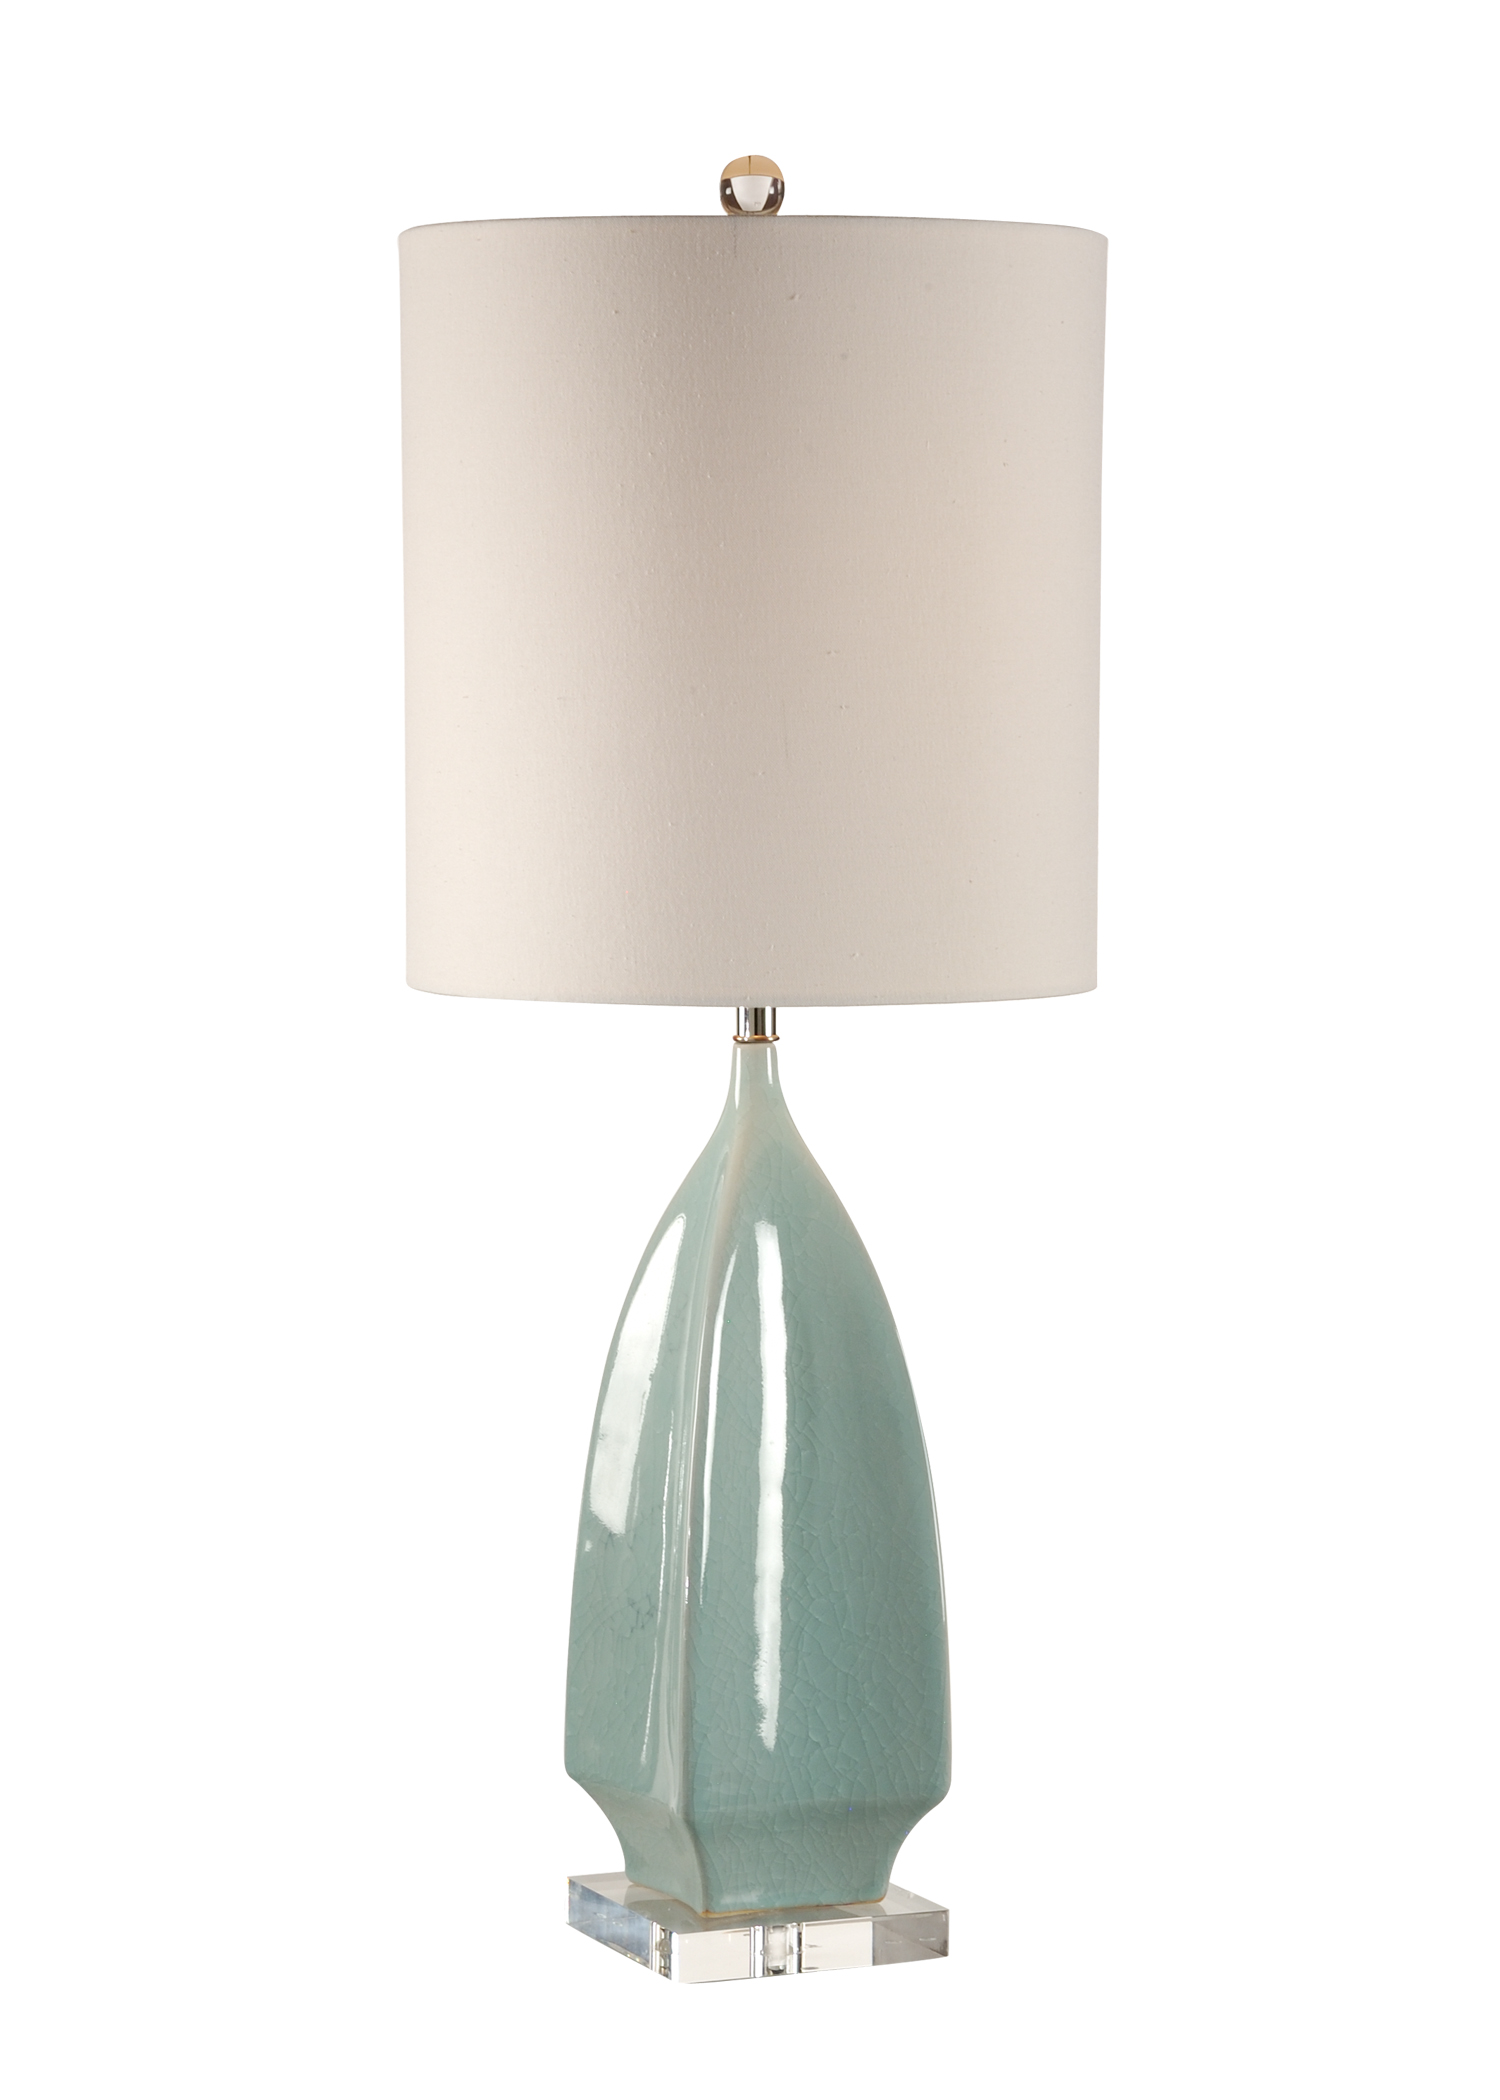 Superieur Wildwood Lamps 13135 Coastal Lola Lamp In Pale Blue Crackle Glaze